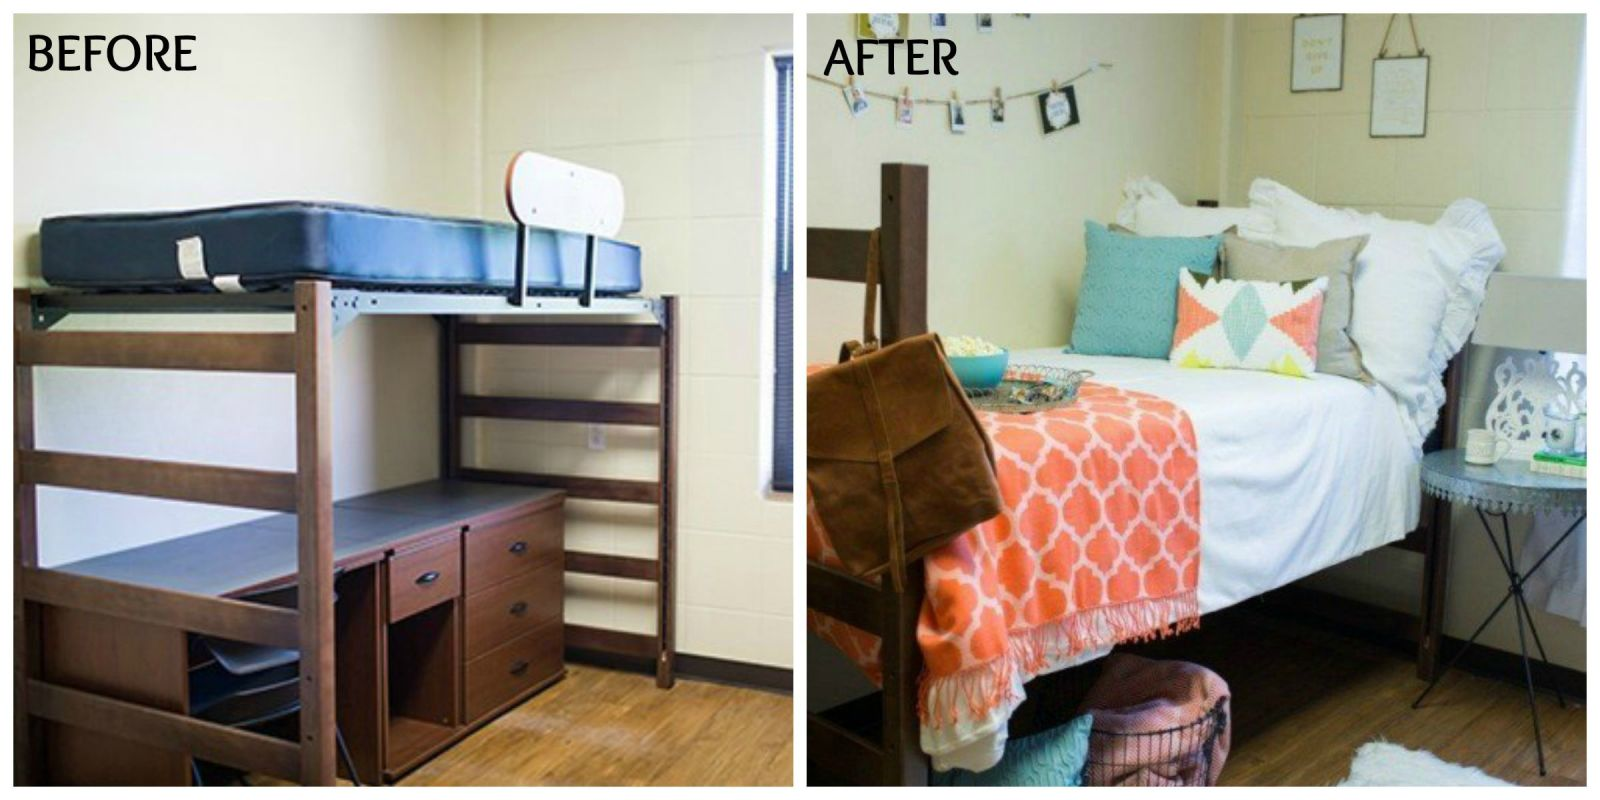 Joanna Gaines Dorm Room Makeover - Magnolia Homes Decorating